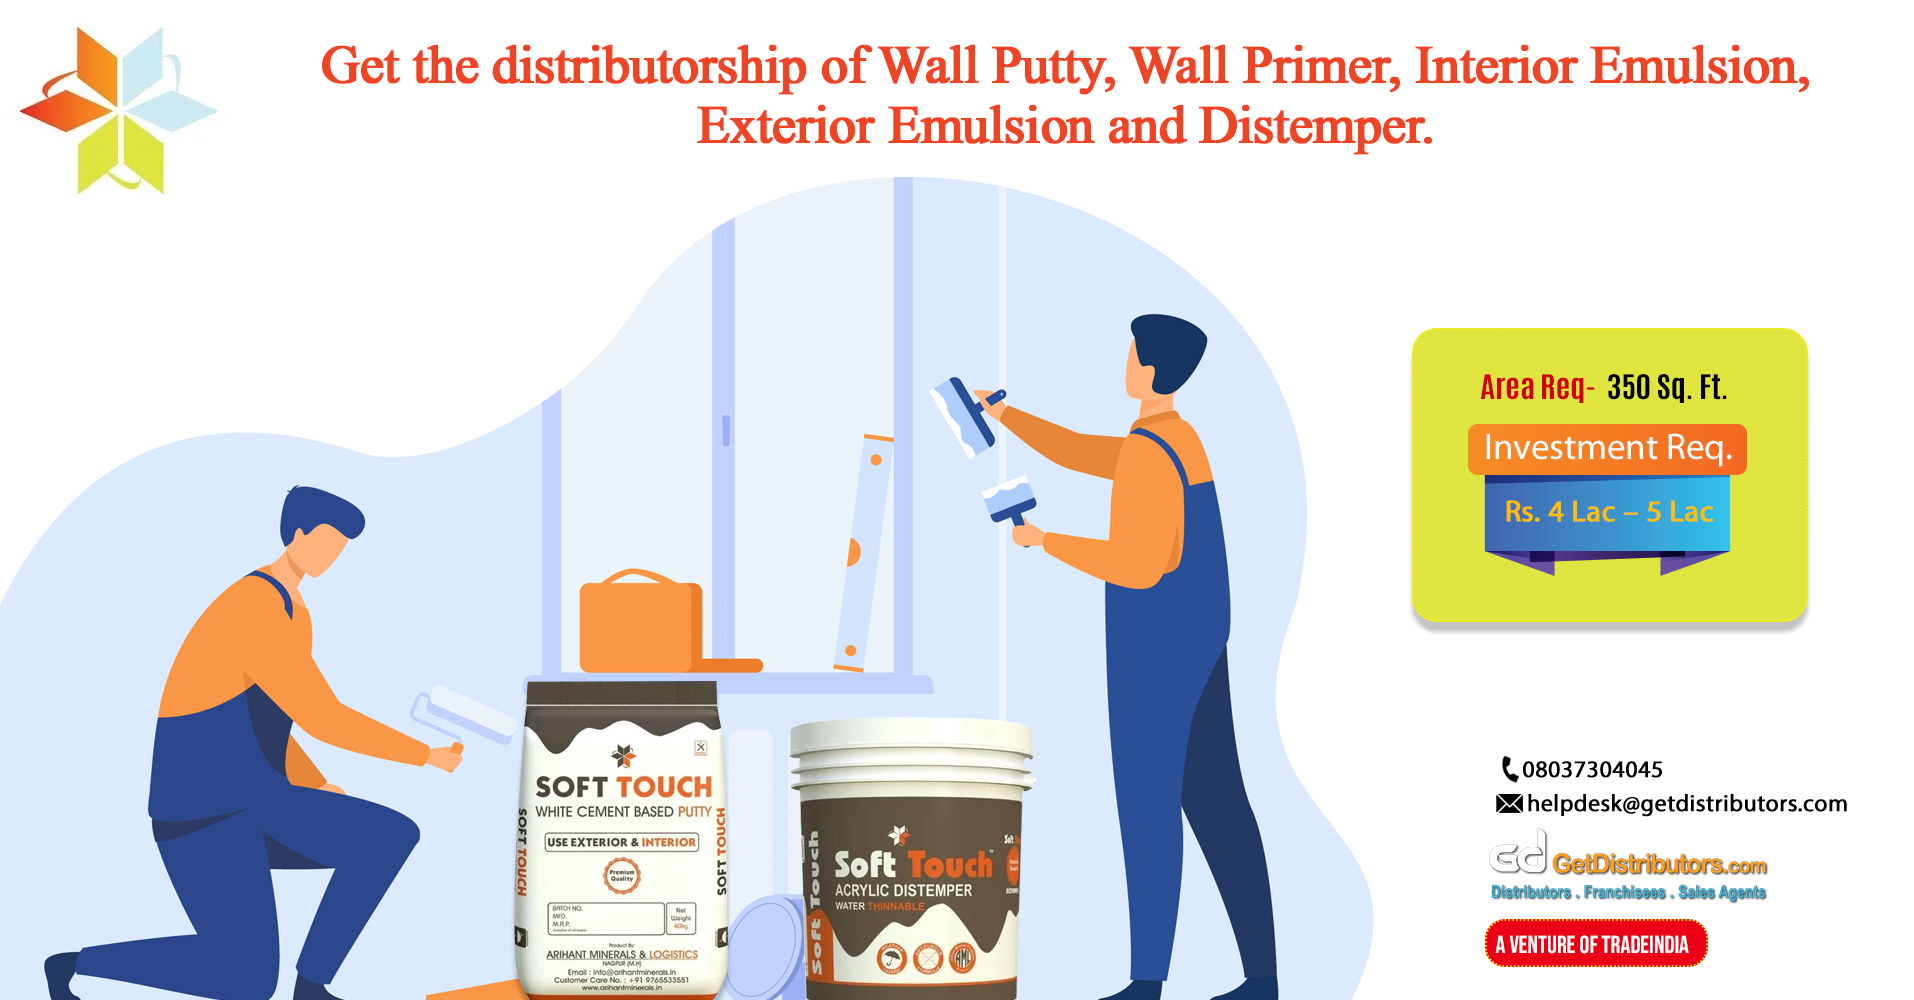 High-class wall putty, wall primer, emulsion, other products for distribution